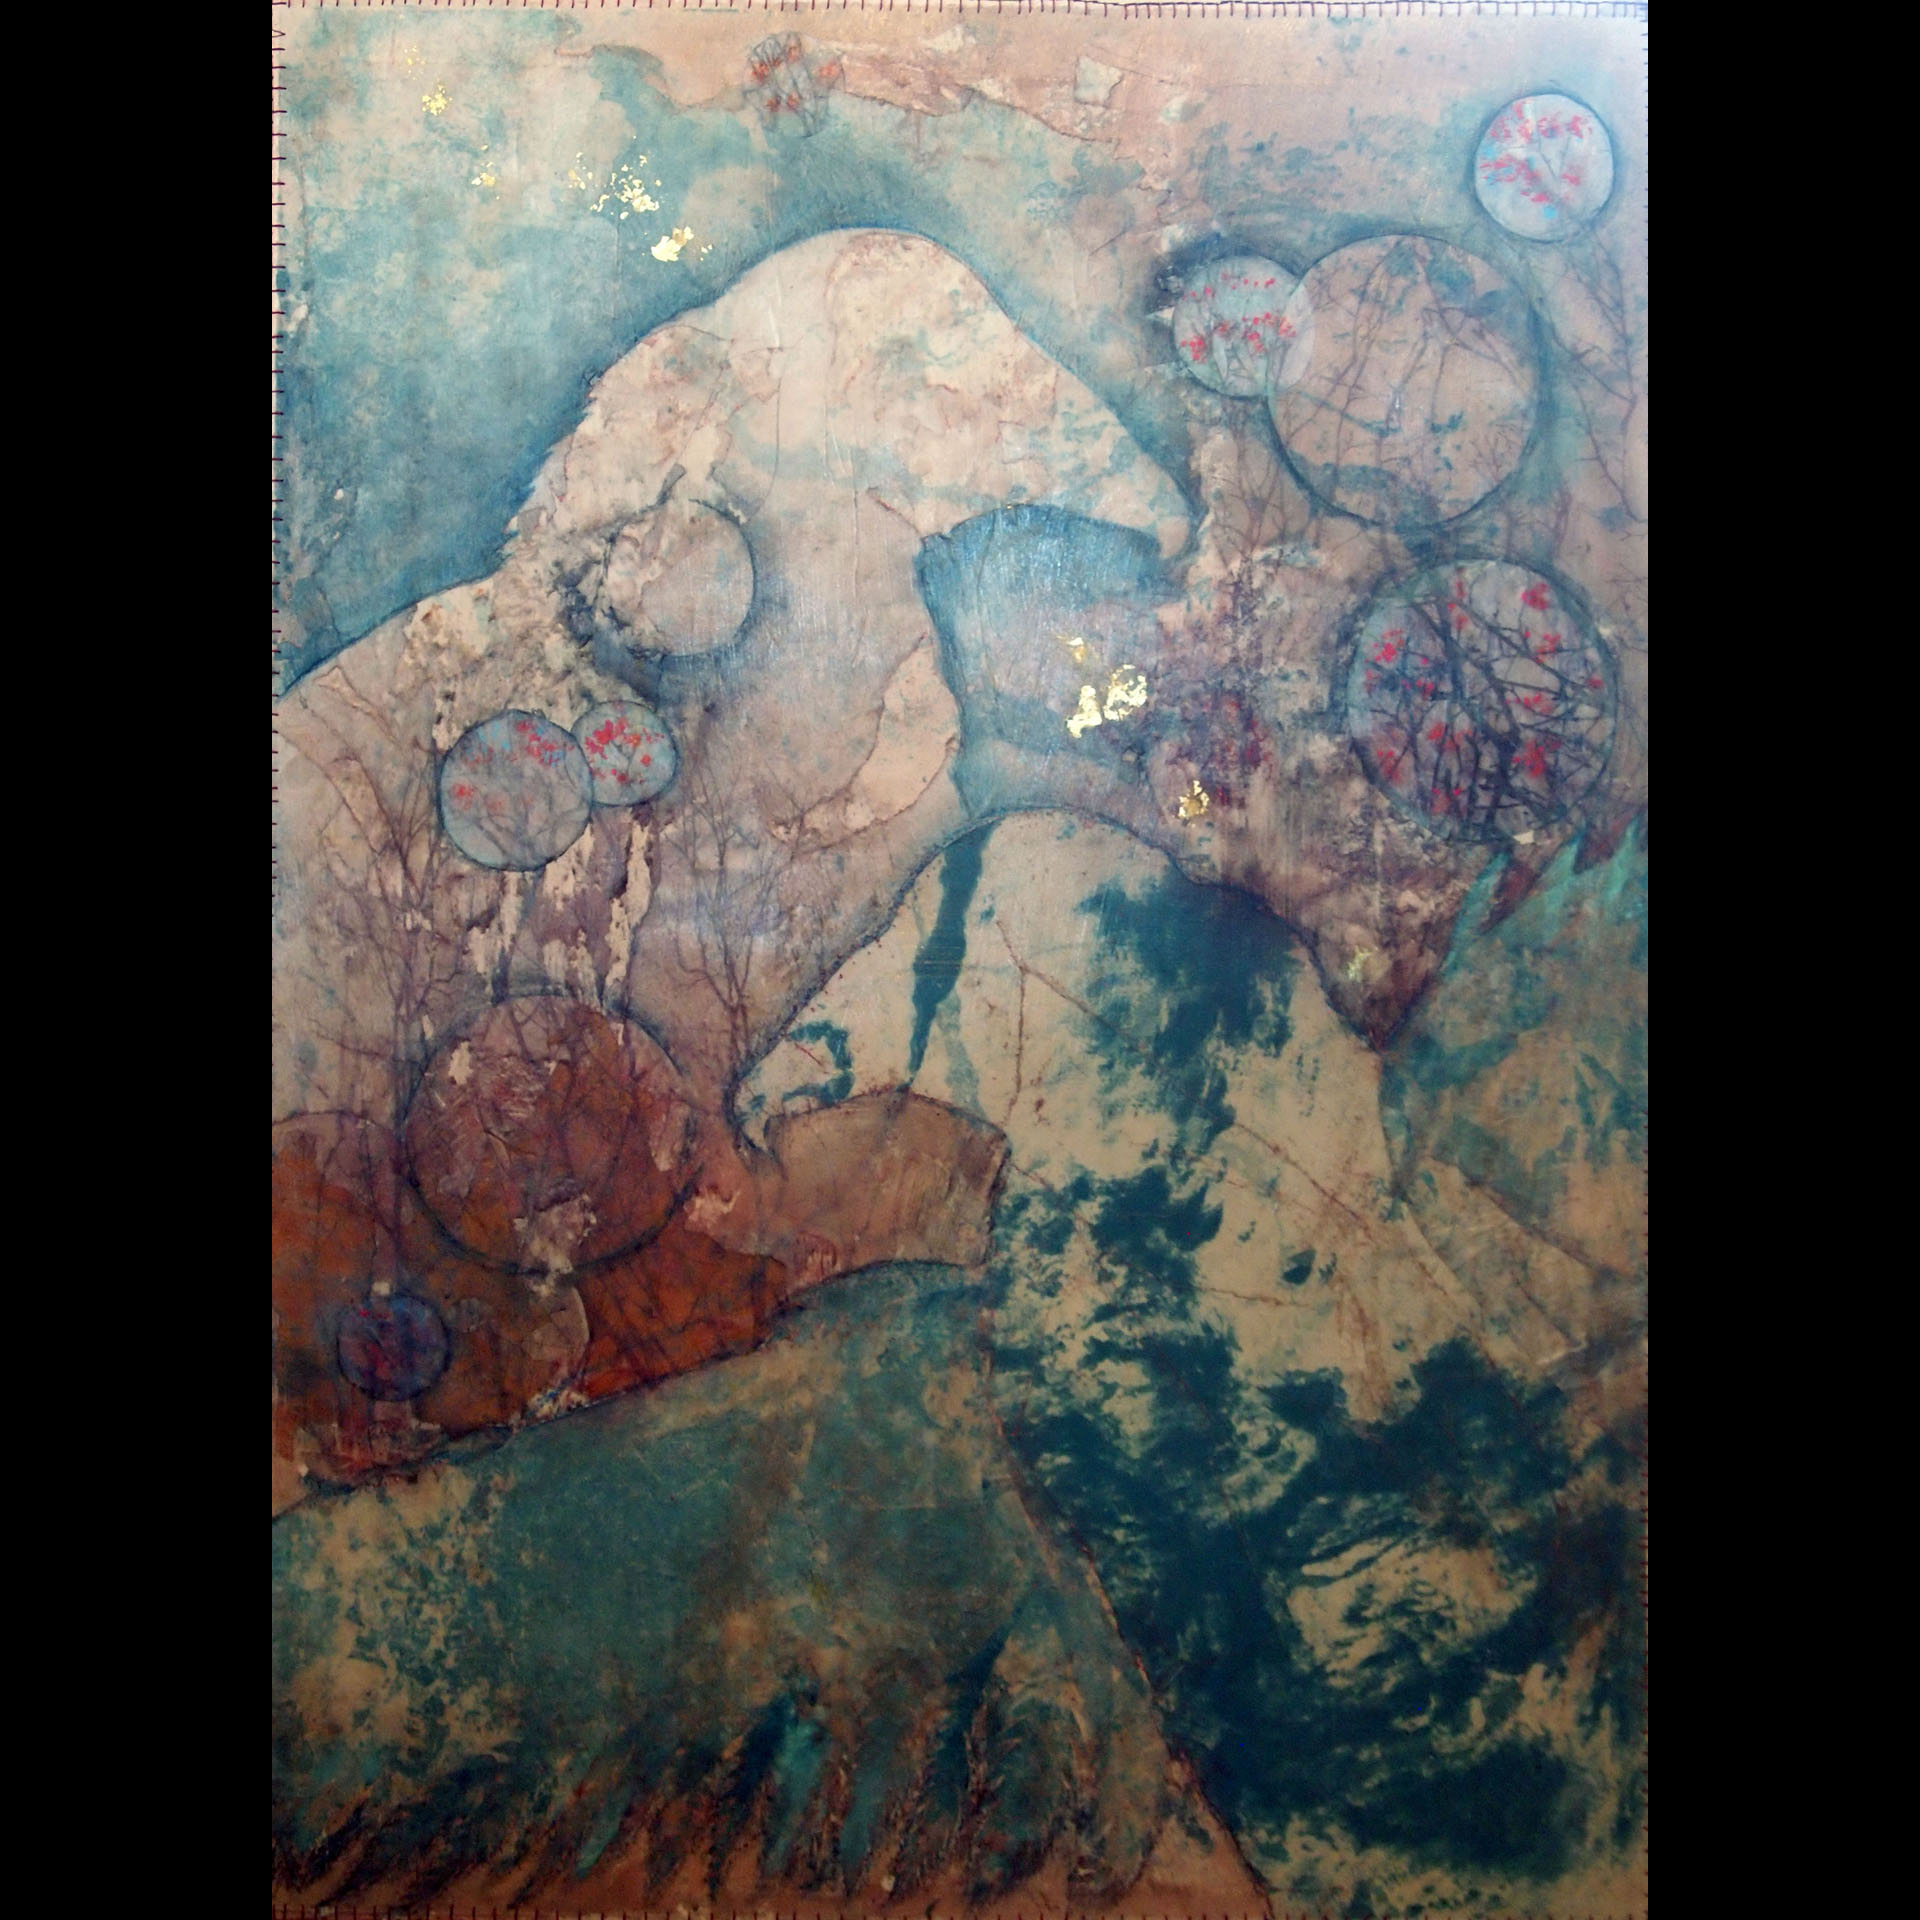 CATHYJEAN CLARK  - Nellsville, WI   Aura III   etching, litho, chine colle, $875